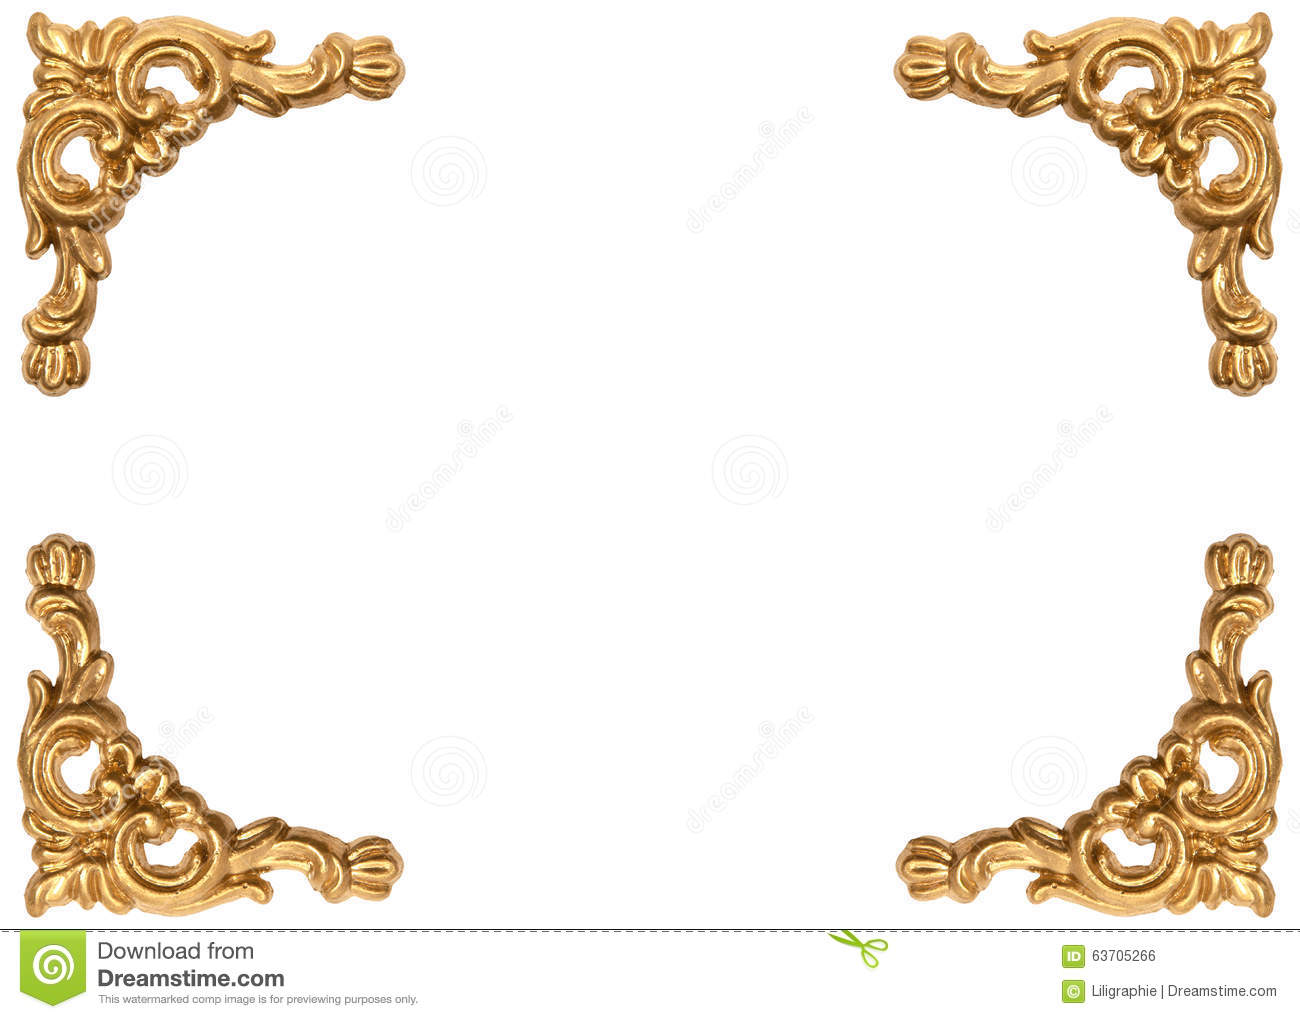 Golden corners of carved baroque style picture frame stock for Picture frame corners